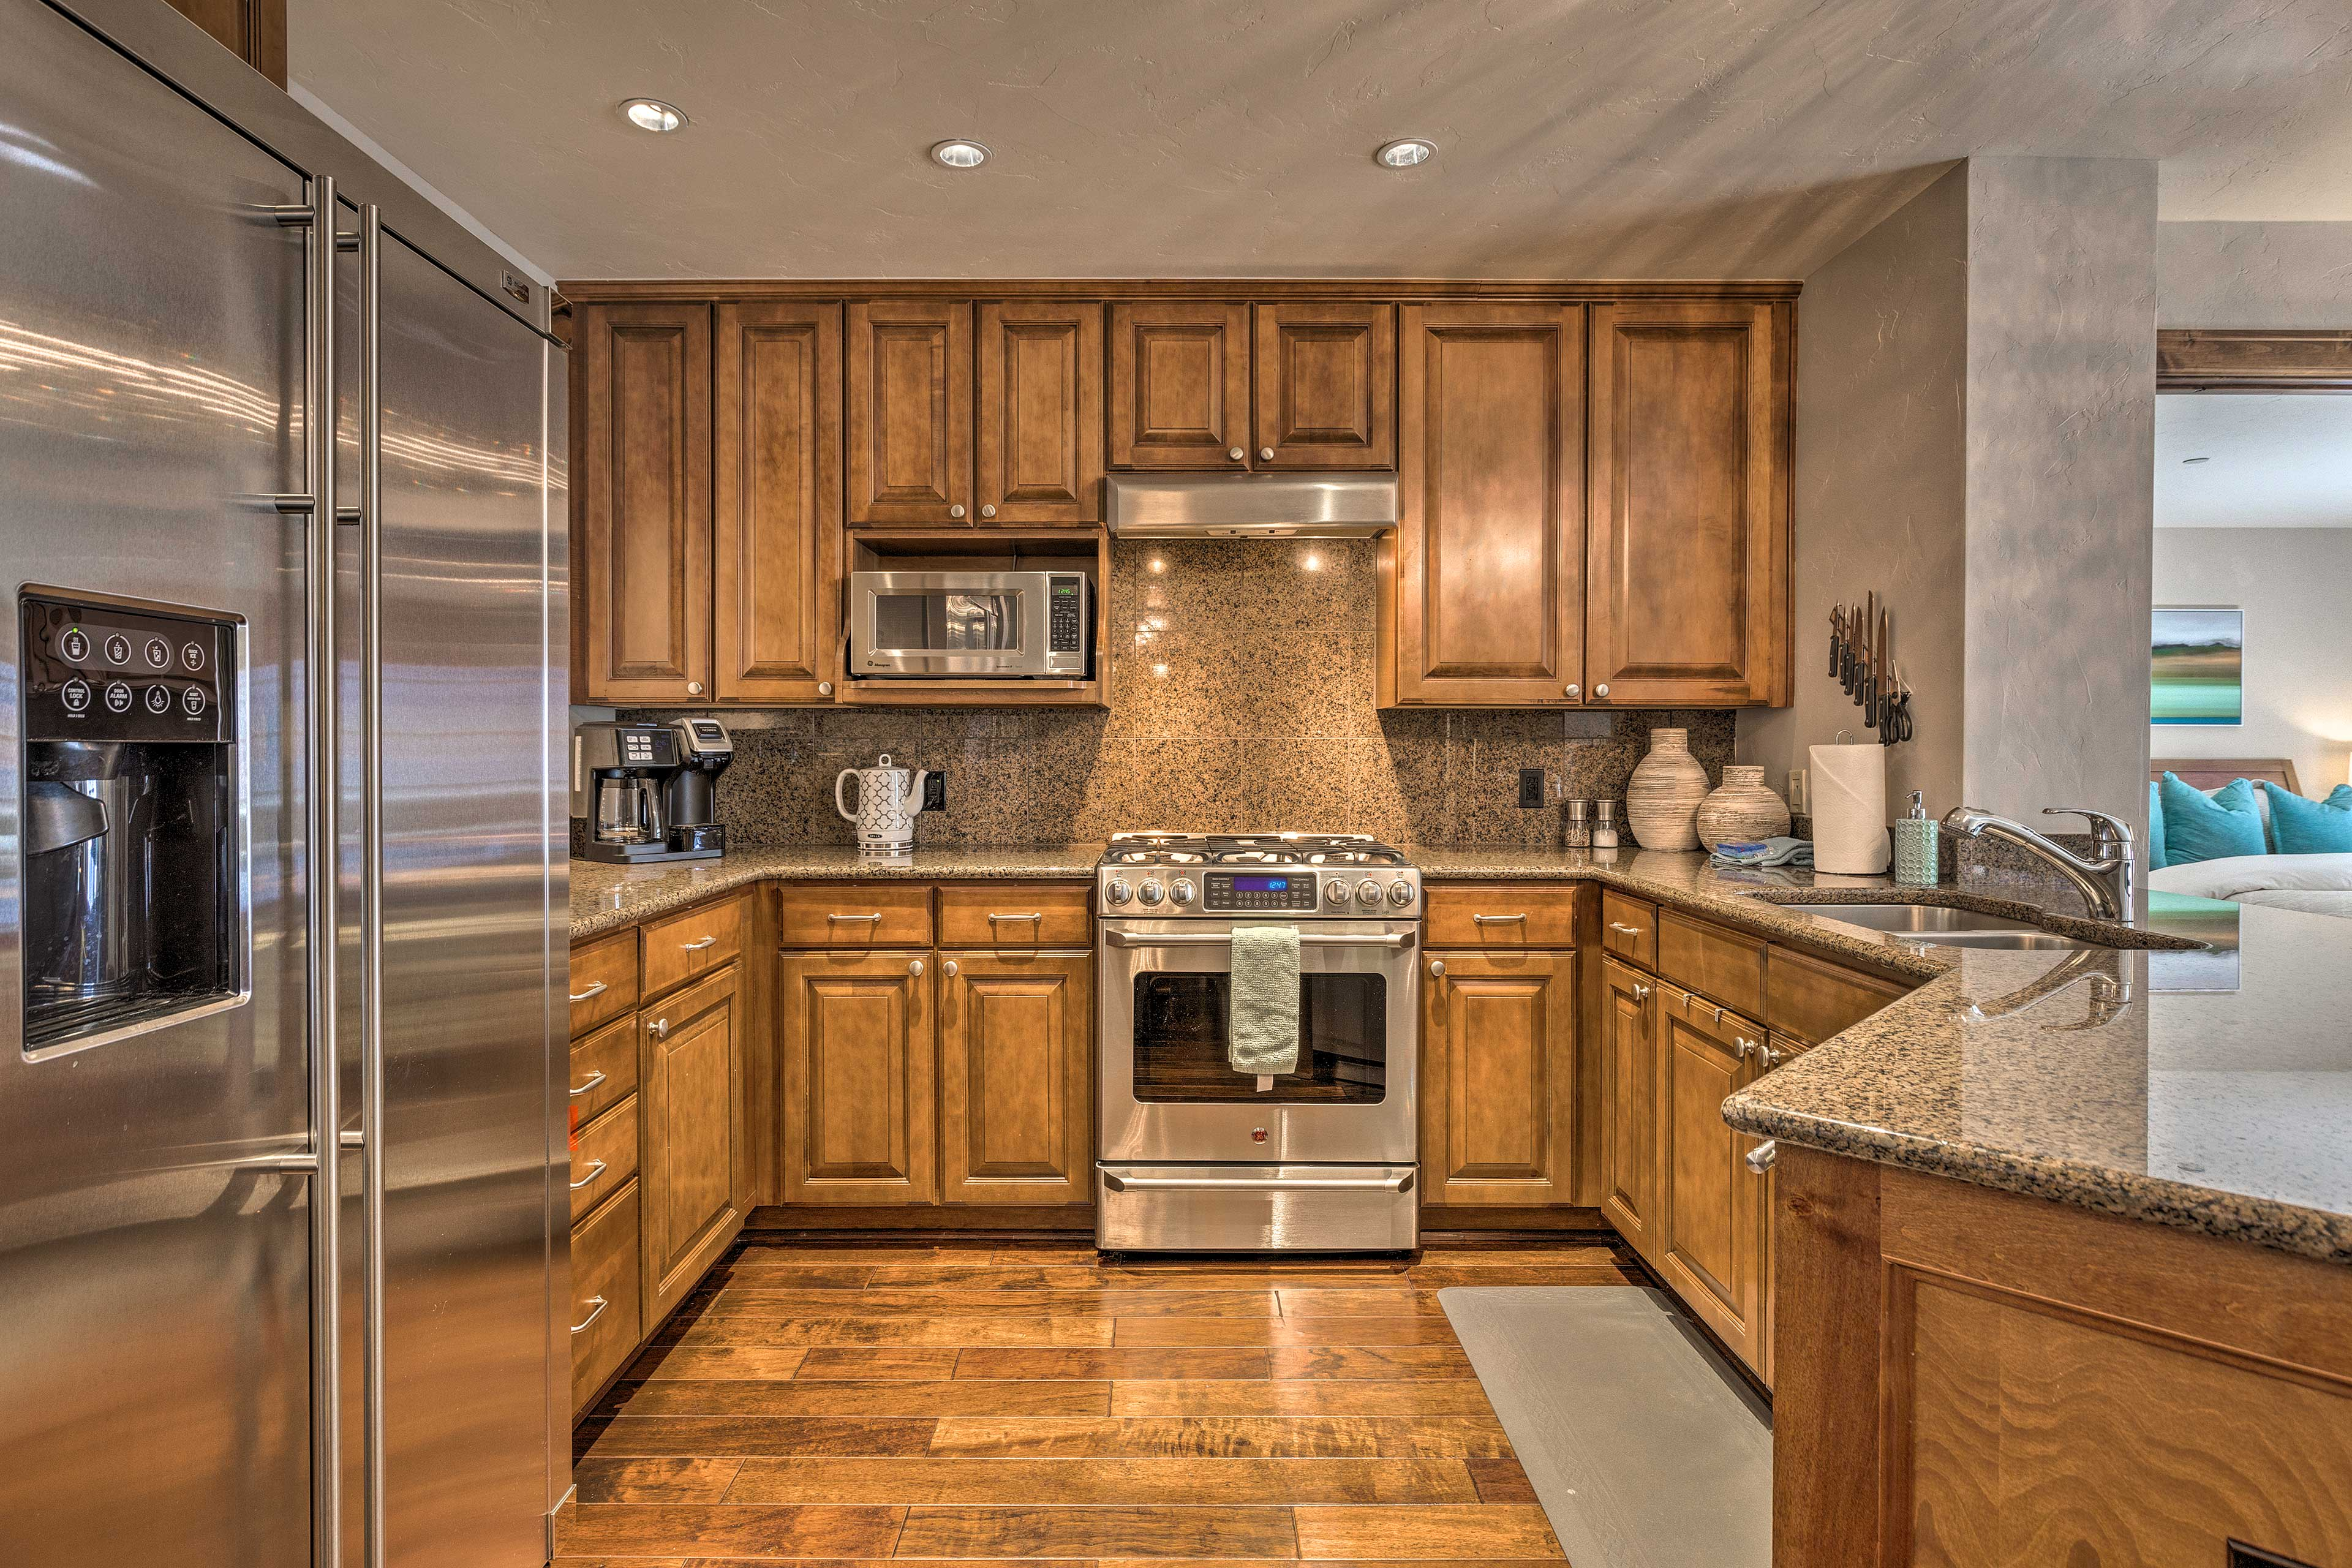 The fully equipped kitchen with stainless steel appliances makes cooking a joy.